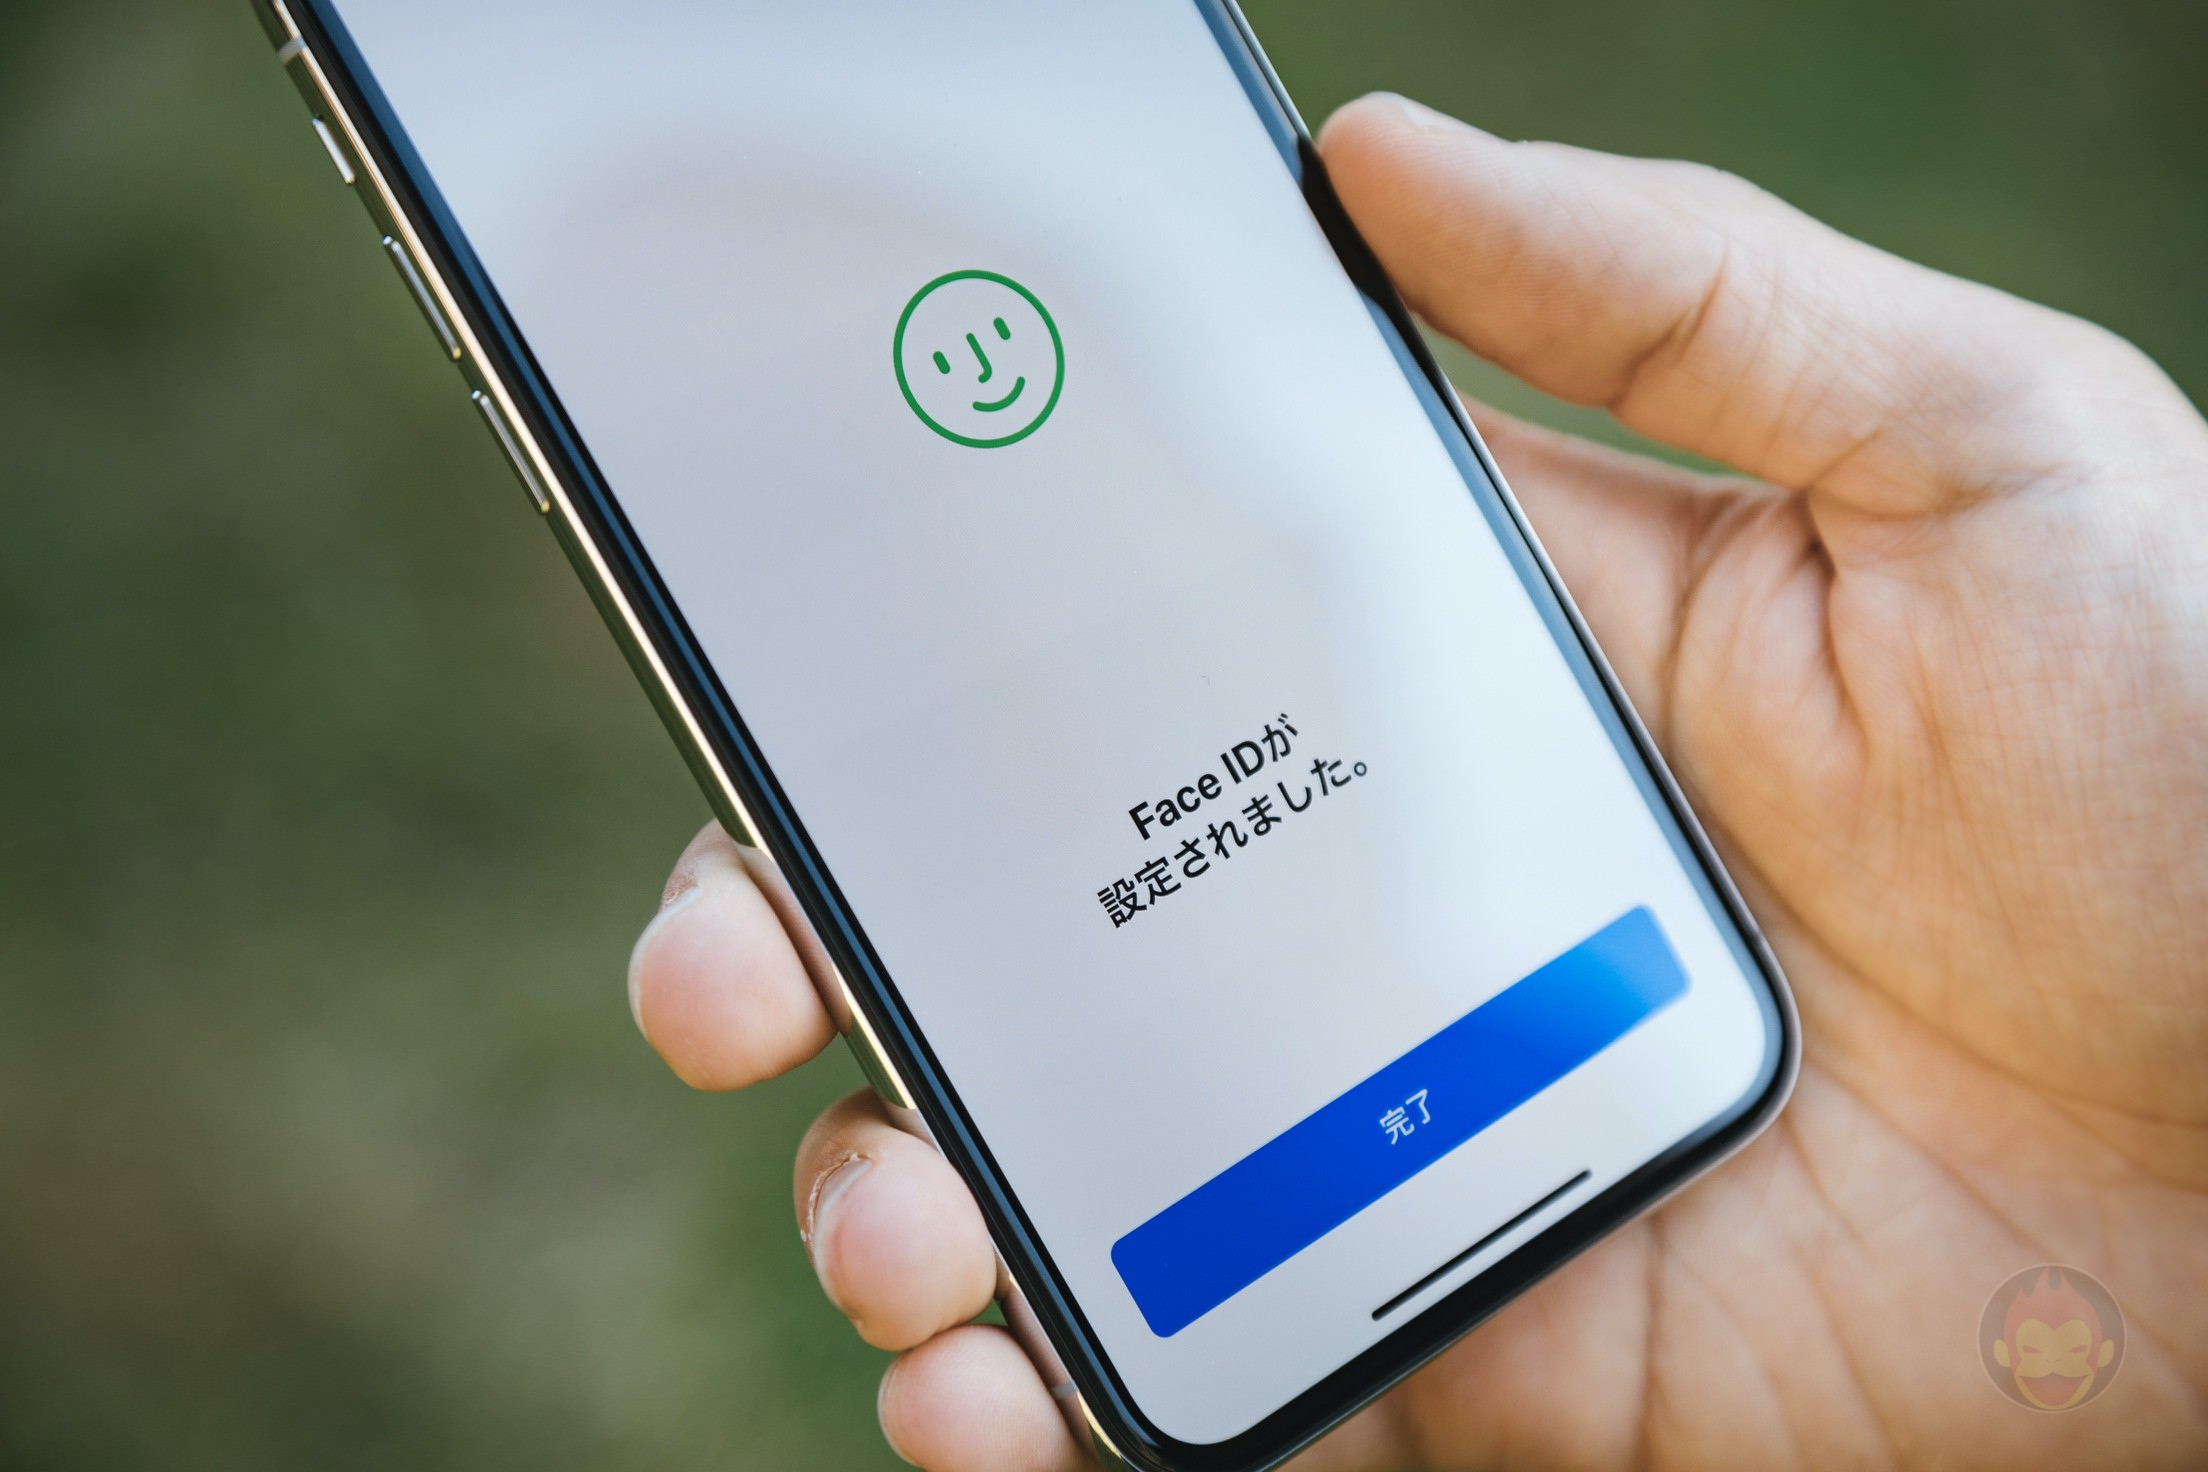 iPhone-X-Silver-Review-12.jpg